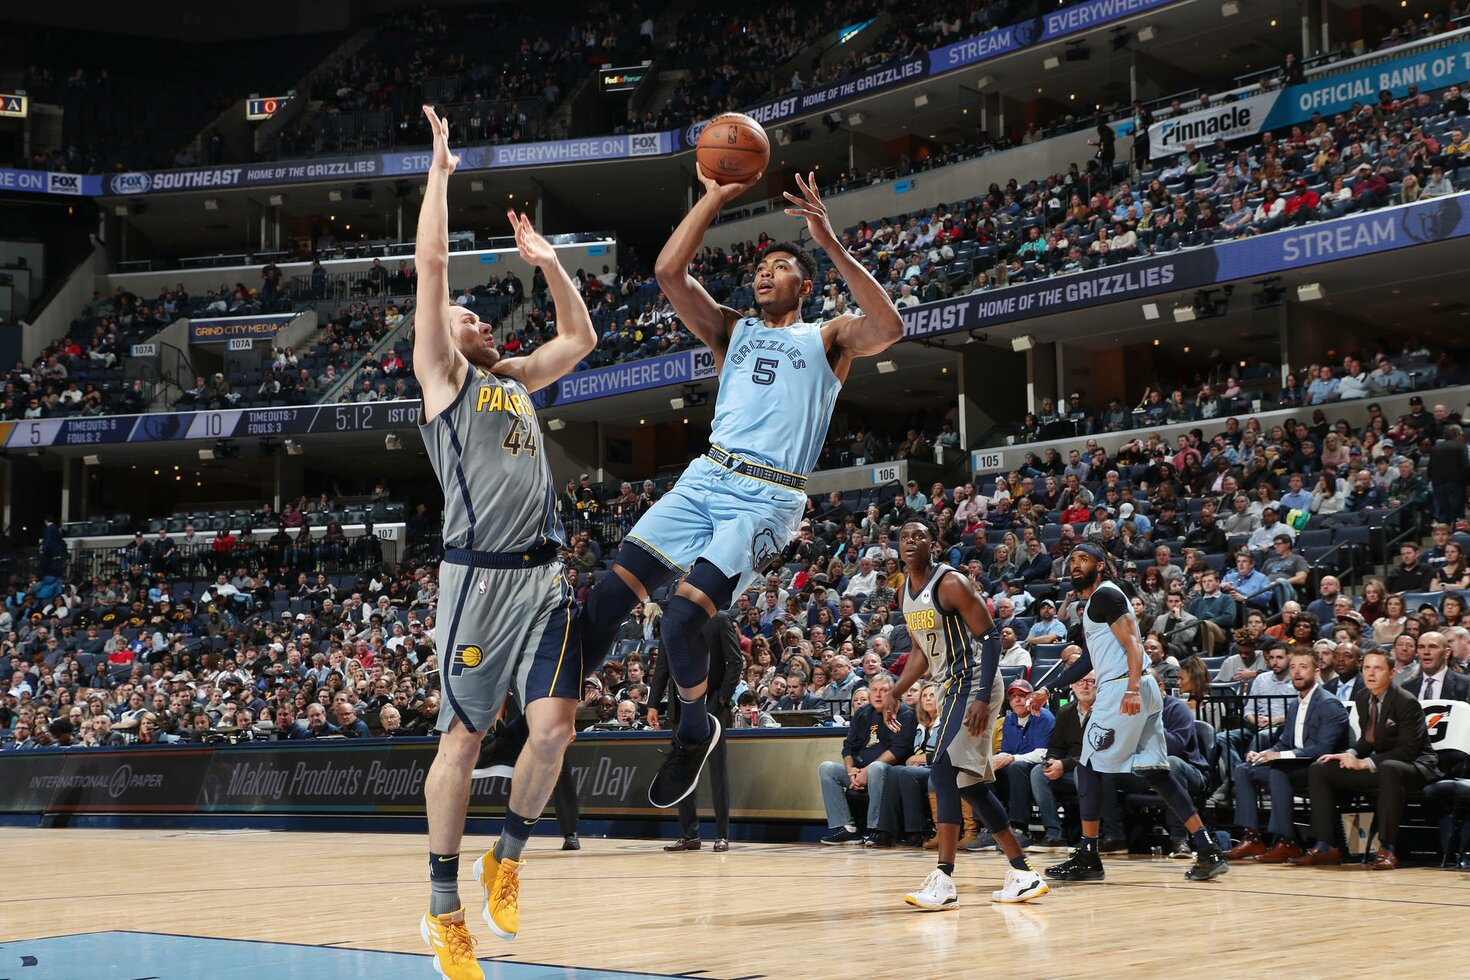 MEMPHIS, TN - JANUARY 26:  Bruno Caboclo #5 of the Memphis Grizzlies shoots the ball against the Indiana Pacers on January 26, 2019 at FedExForum in Memphis, Tennessee.